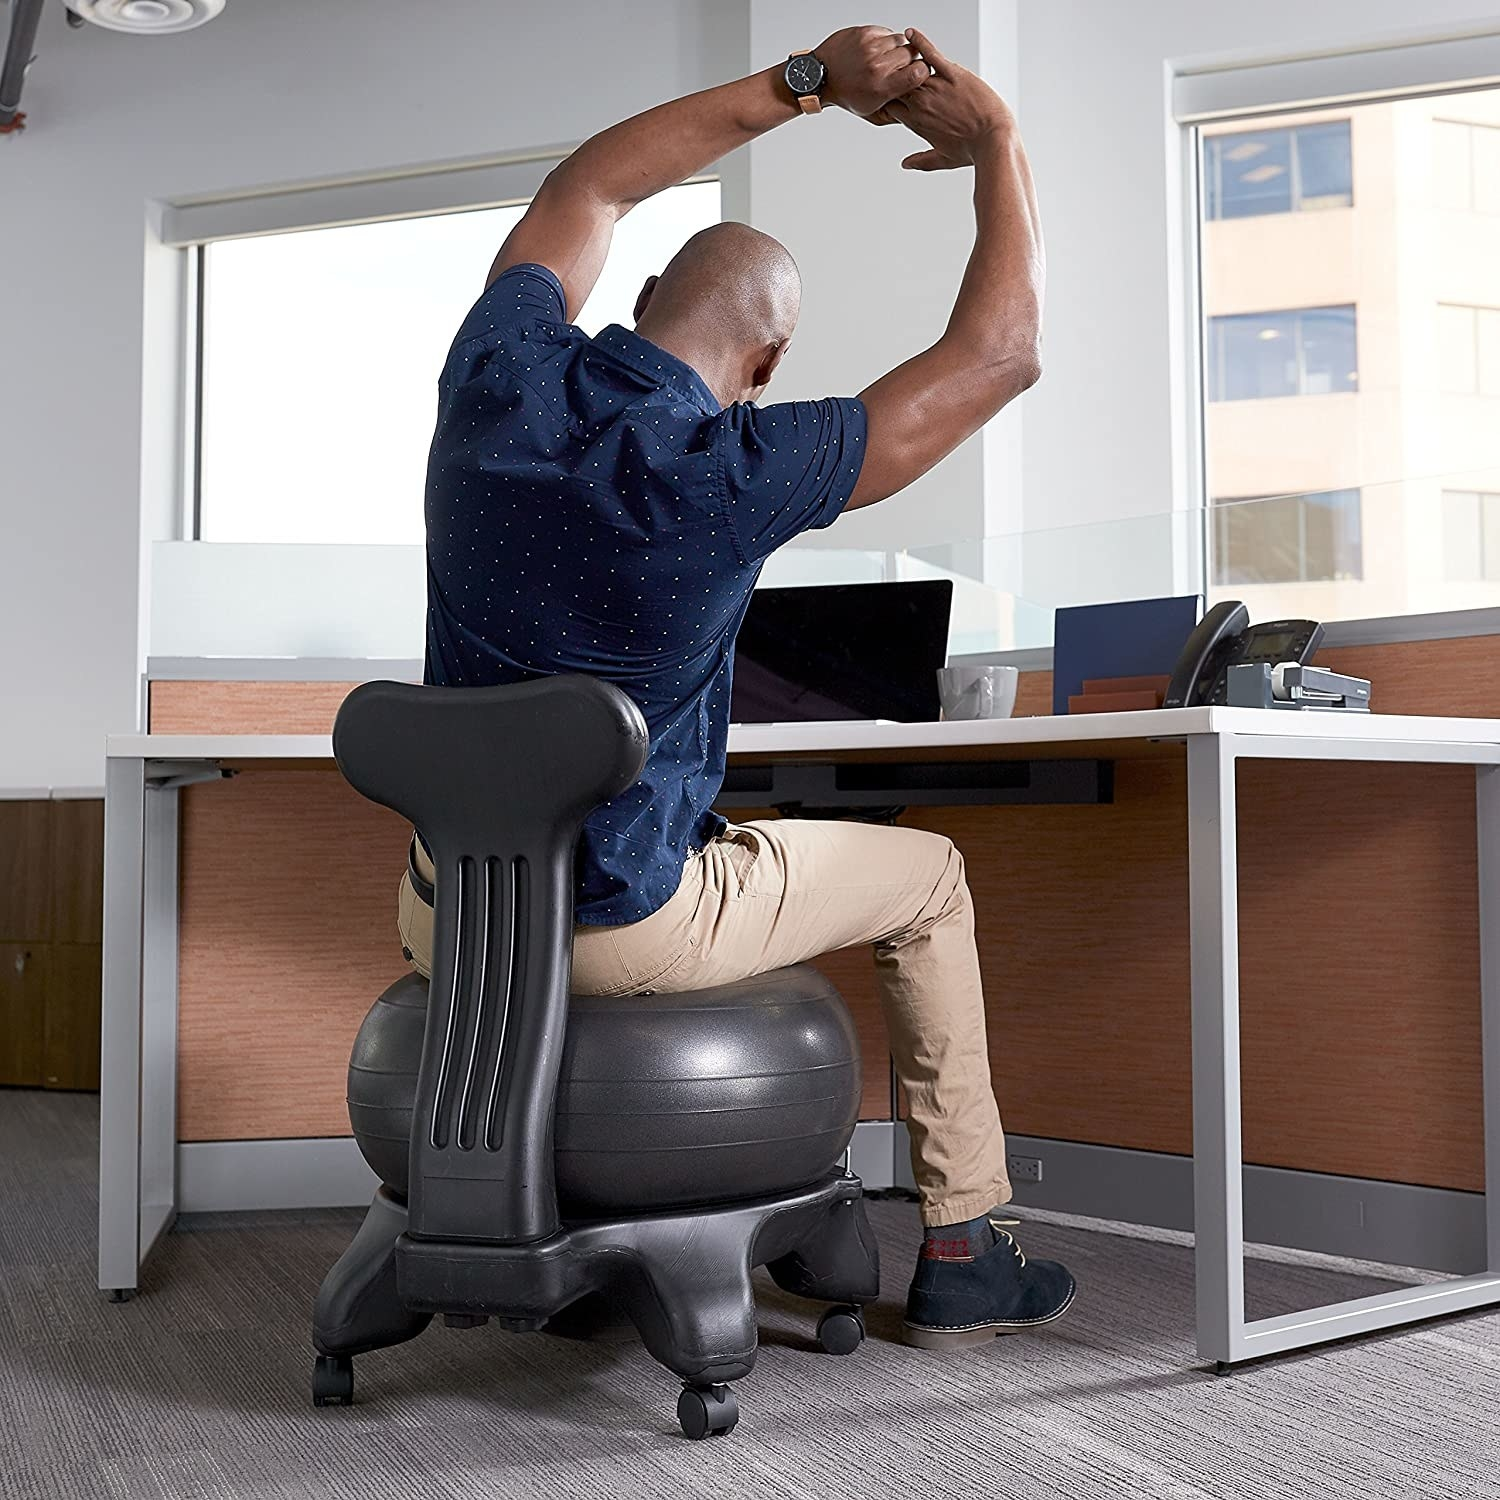 A person sitting on the balance ball chair